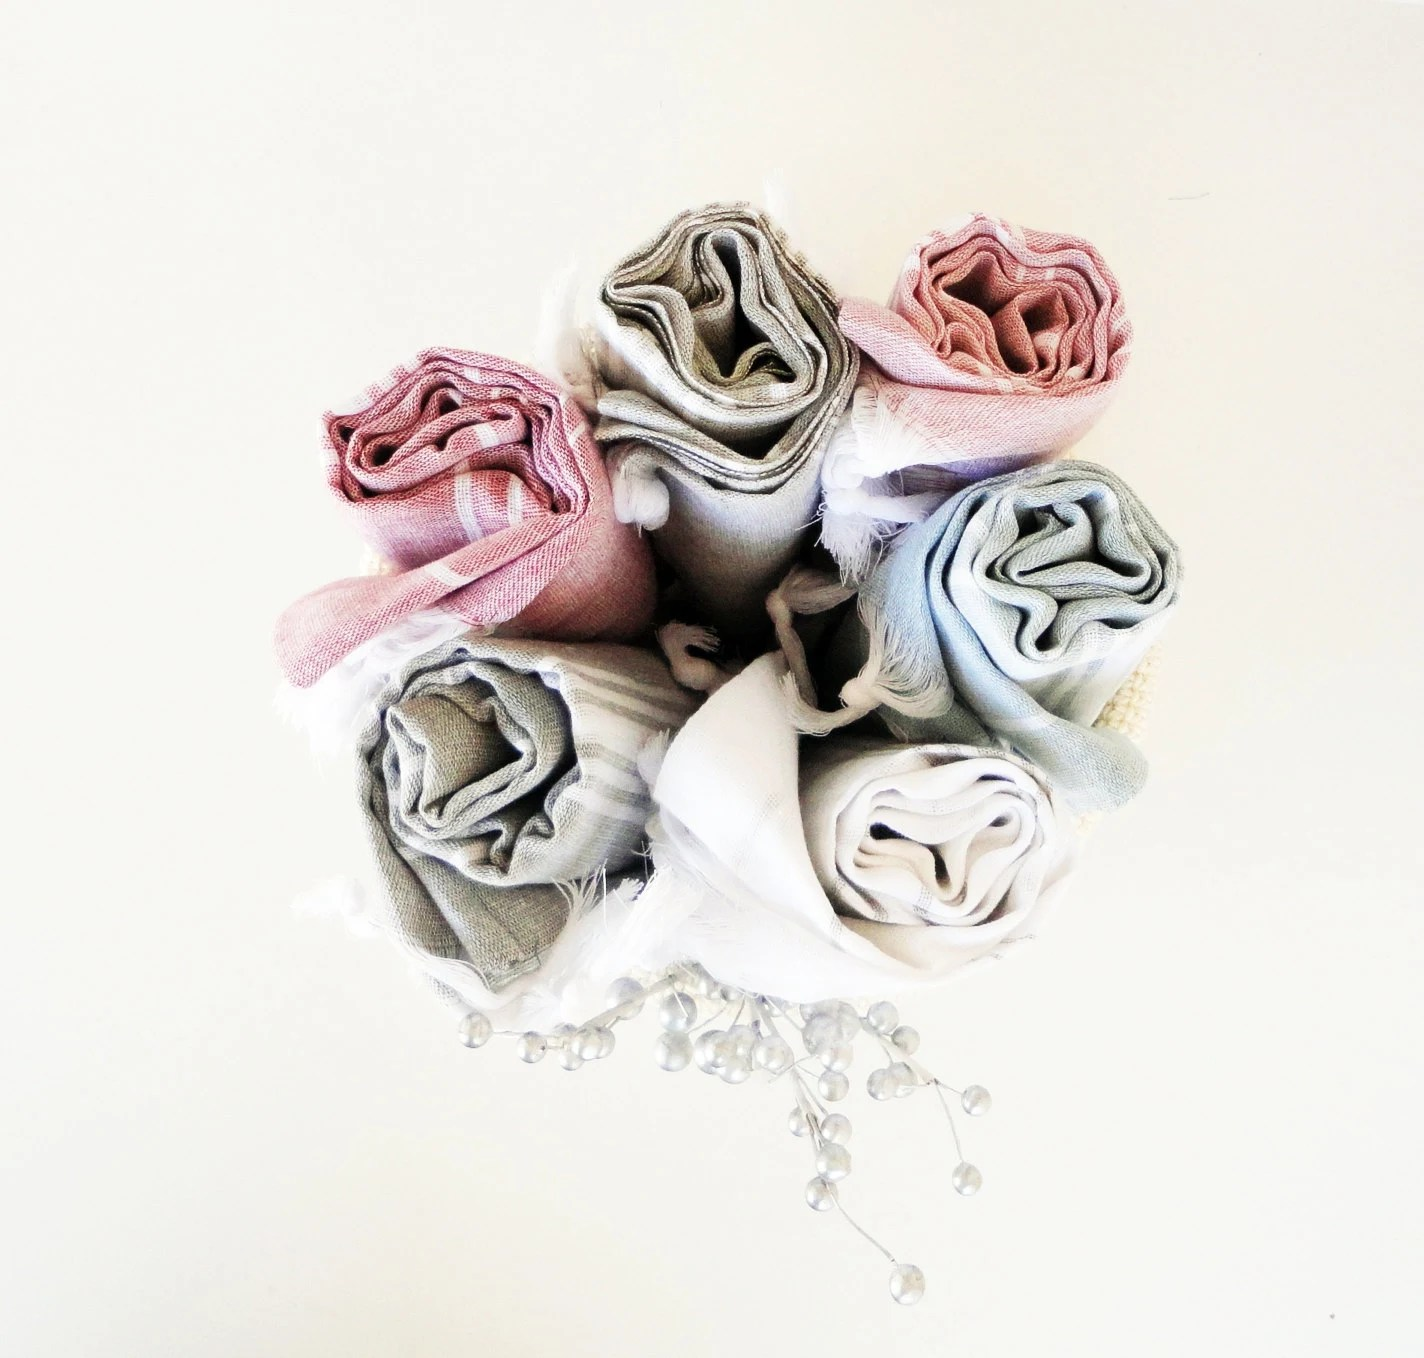 Fast Shipping..Set of 6 PESHTEMALS,Super Light and Absorbent Natural Cotton,Eco Friendly ,High Quality Bath,Beach,Spa,Yoga,Pool Towel - loovee